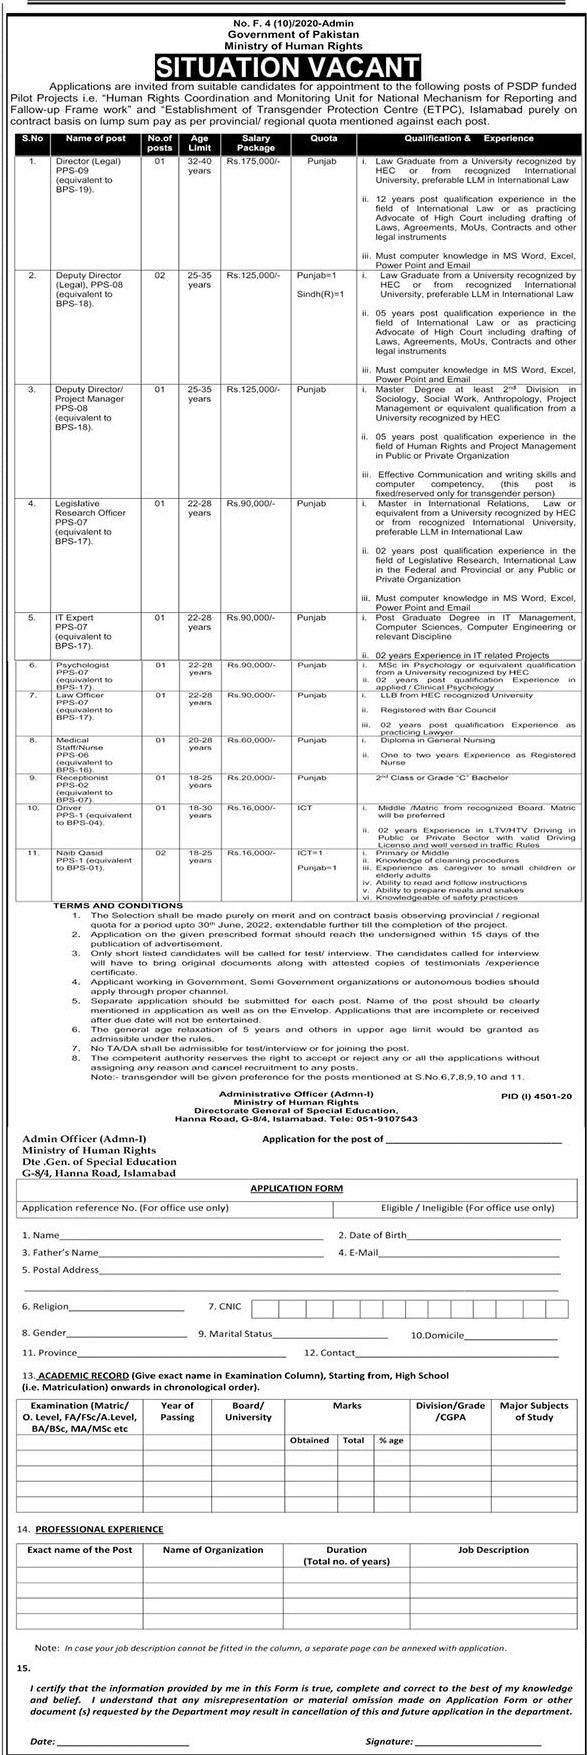 Download Ministry of Human Rights Jobs 2021 Application Form - Jobs in Pakistan 2021 - Jobs in Islamabad 2021 - Jobs For Primary, Middle, Matric, Intermediate Degree, Bachelor Degree, Master Degree Base